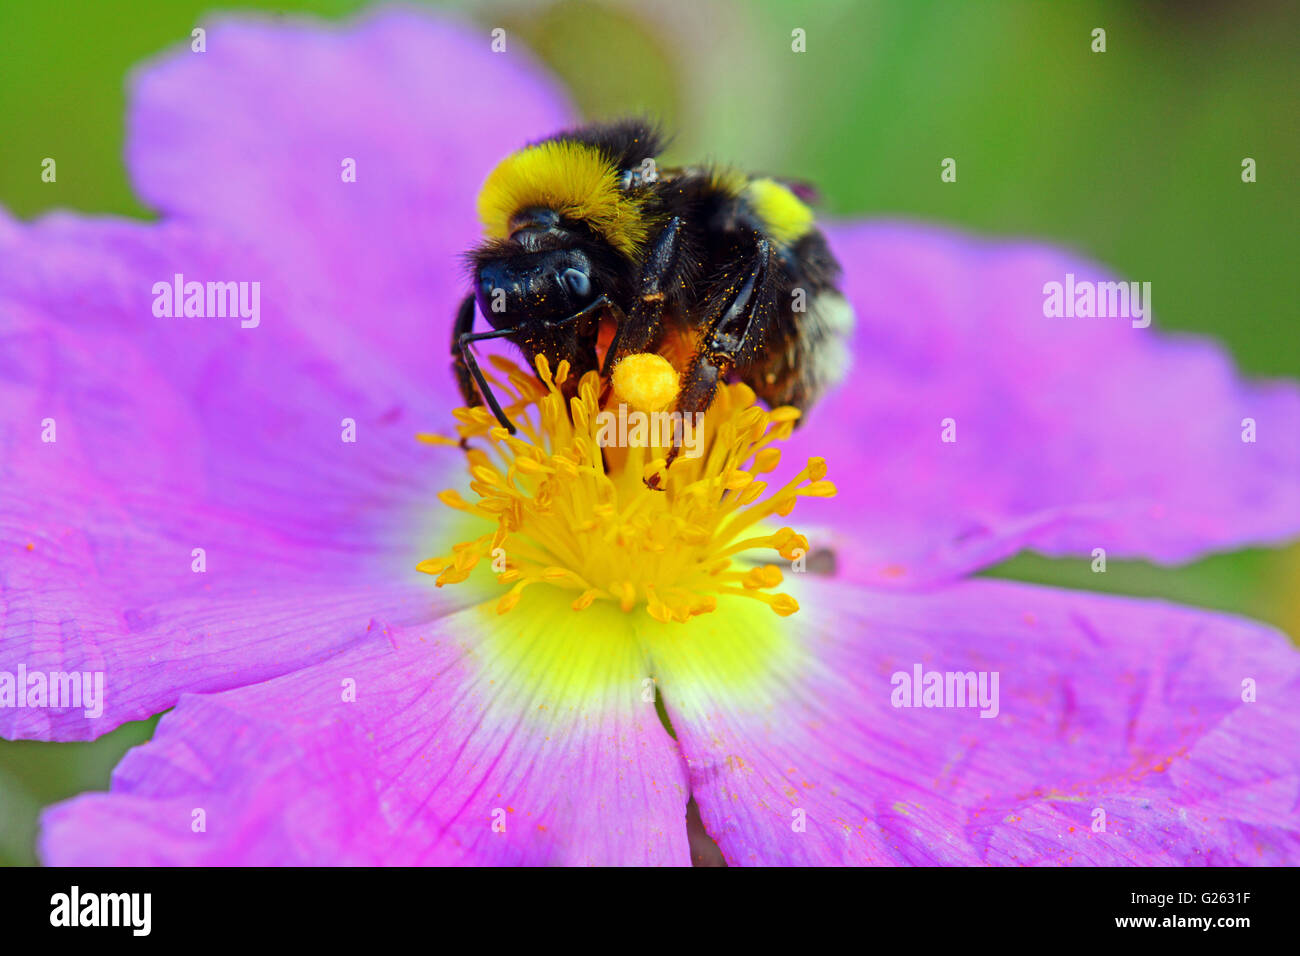 Bumble bee pollinating flower, up close - Stock Image